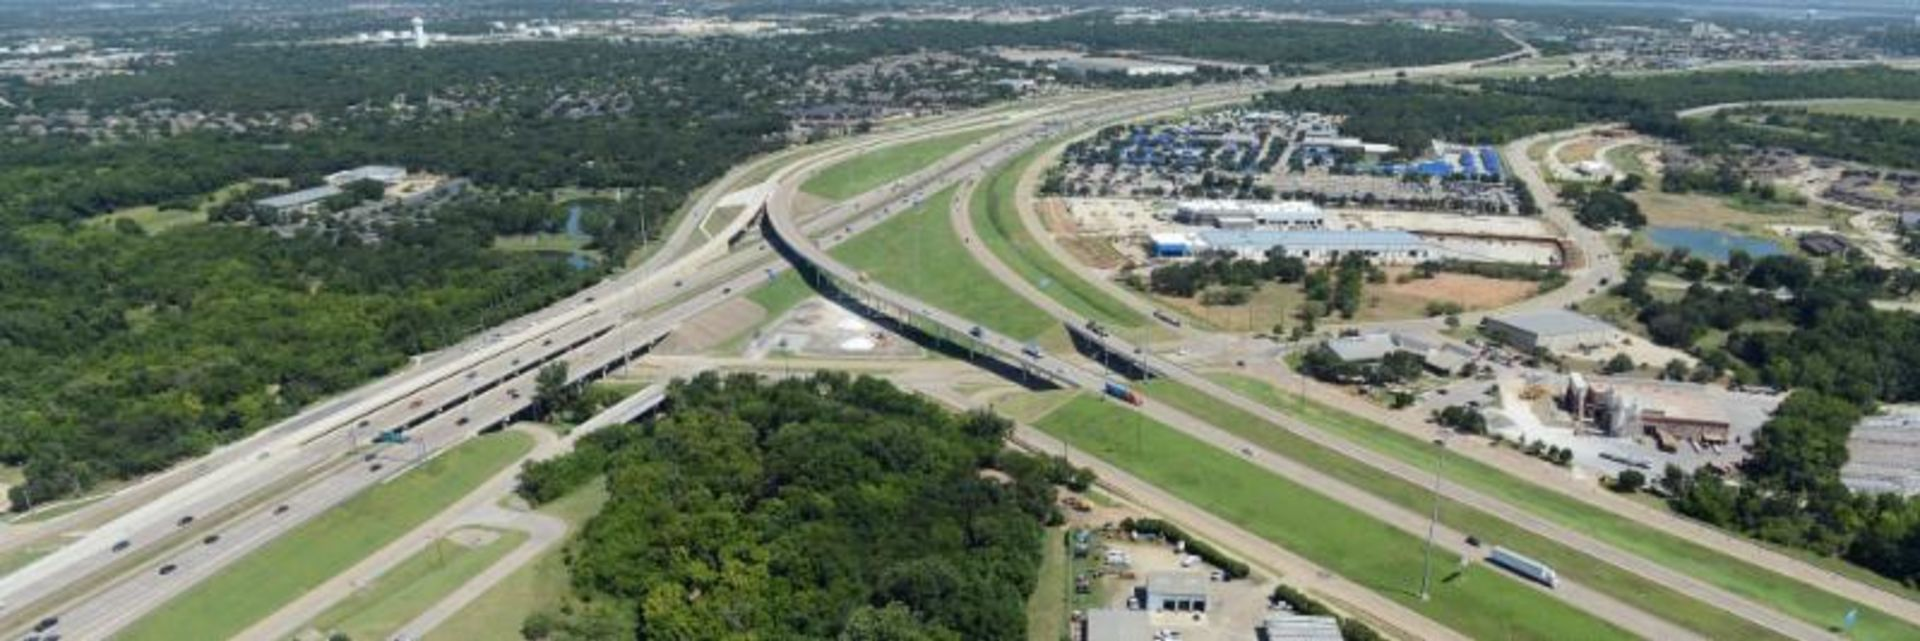 DFW Connector – more highway improvements!